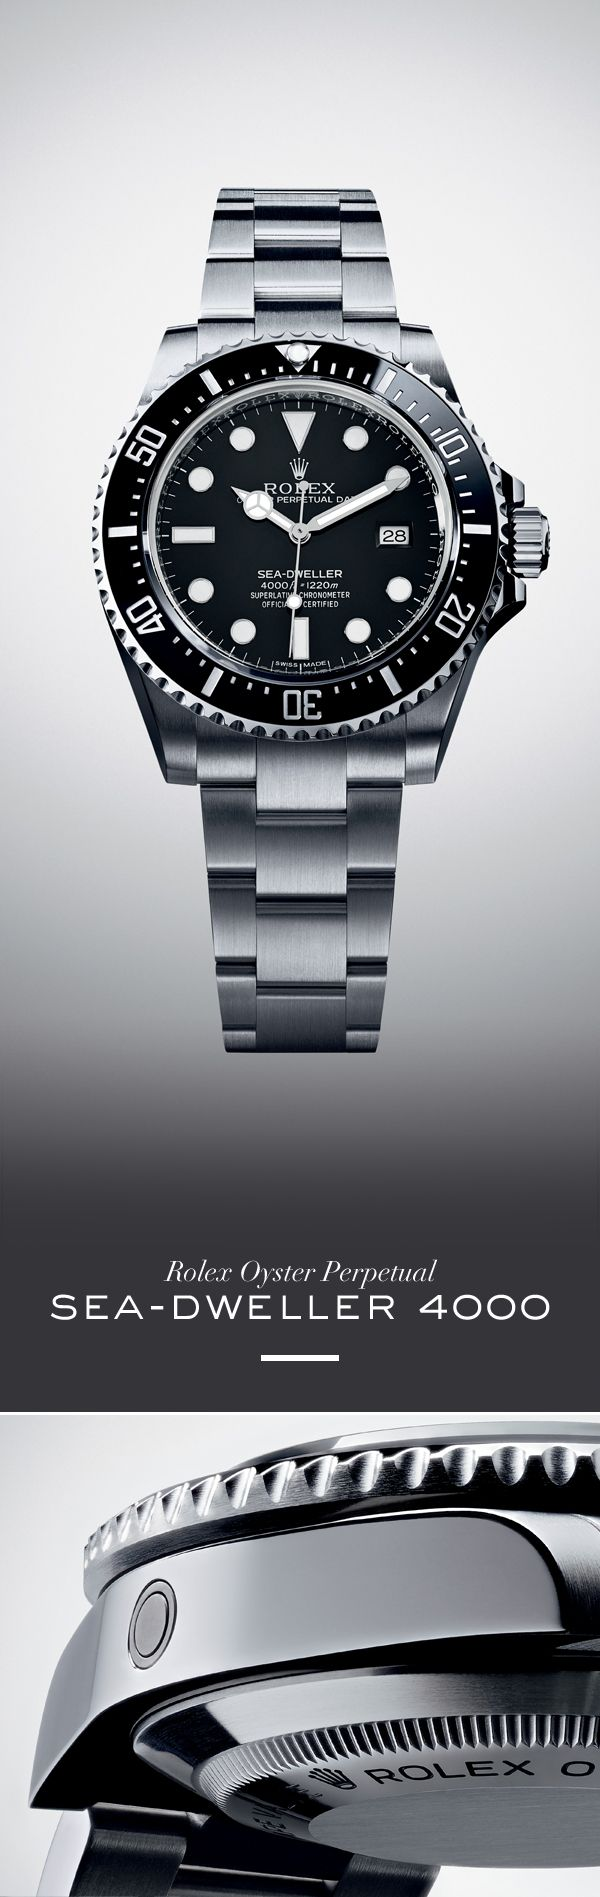 Rolex Sea-Dweller 4000 40 mm in 904L steel with a rotatable black Cerachrom bezel, black dial and Oyster bracelet.#RolexOfficial